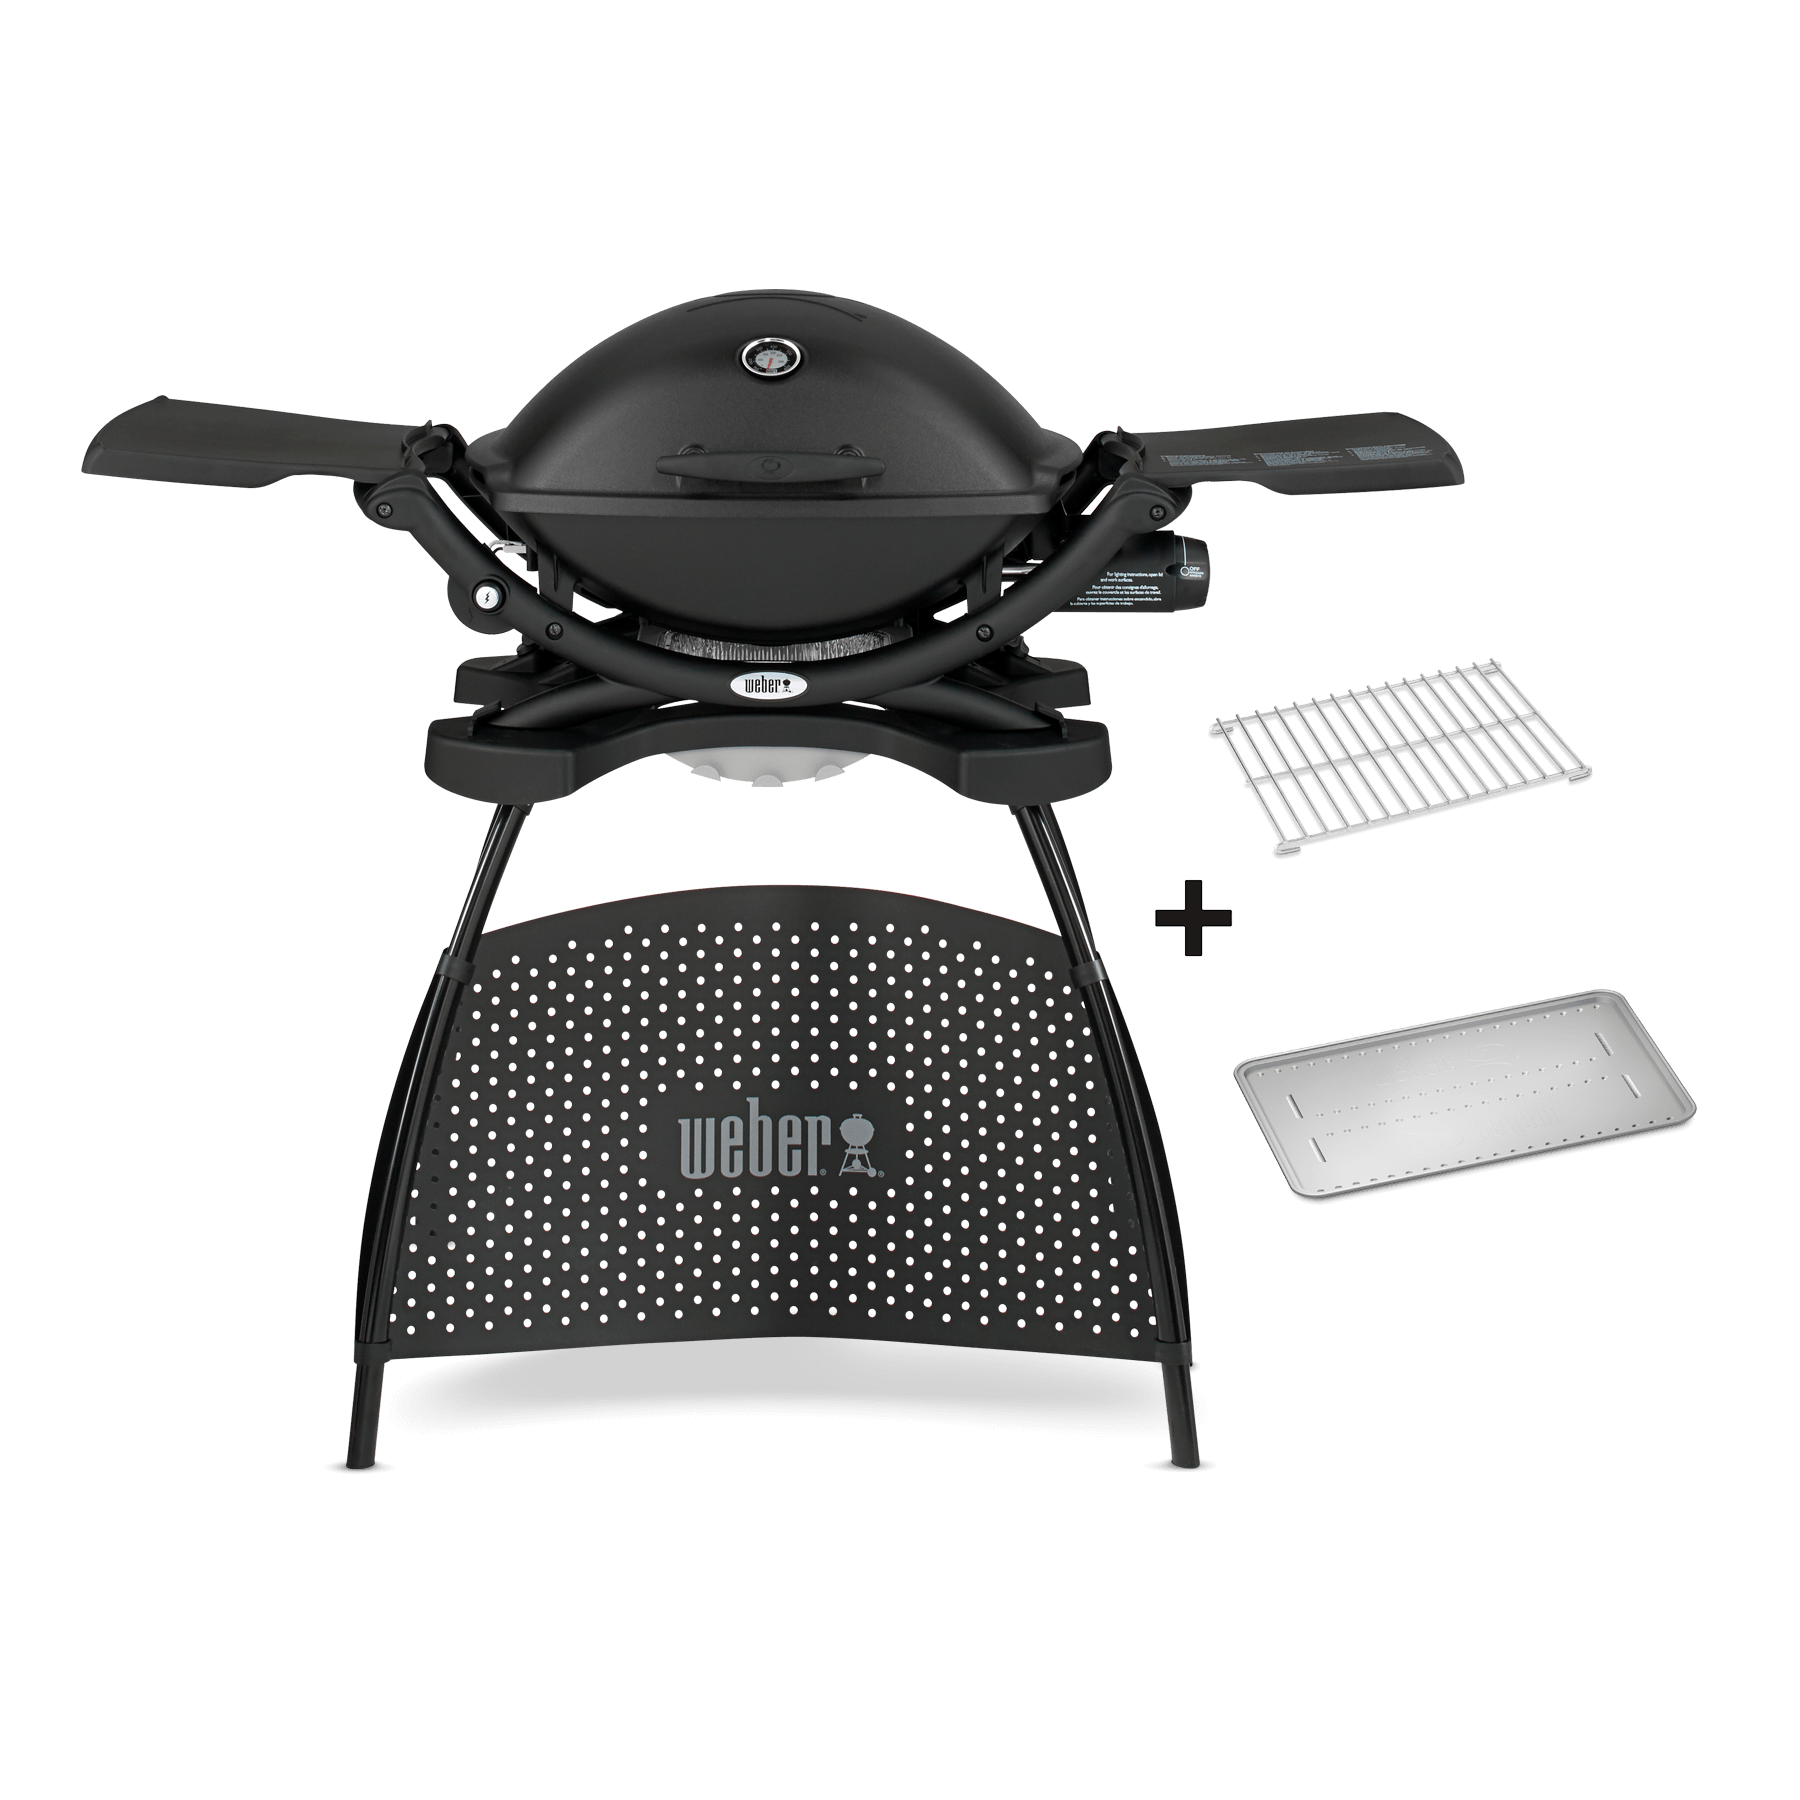 Weber® Q 2200 Gas Grill with Stand